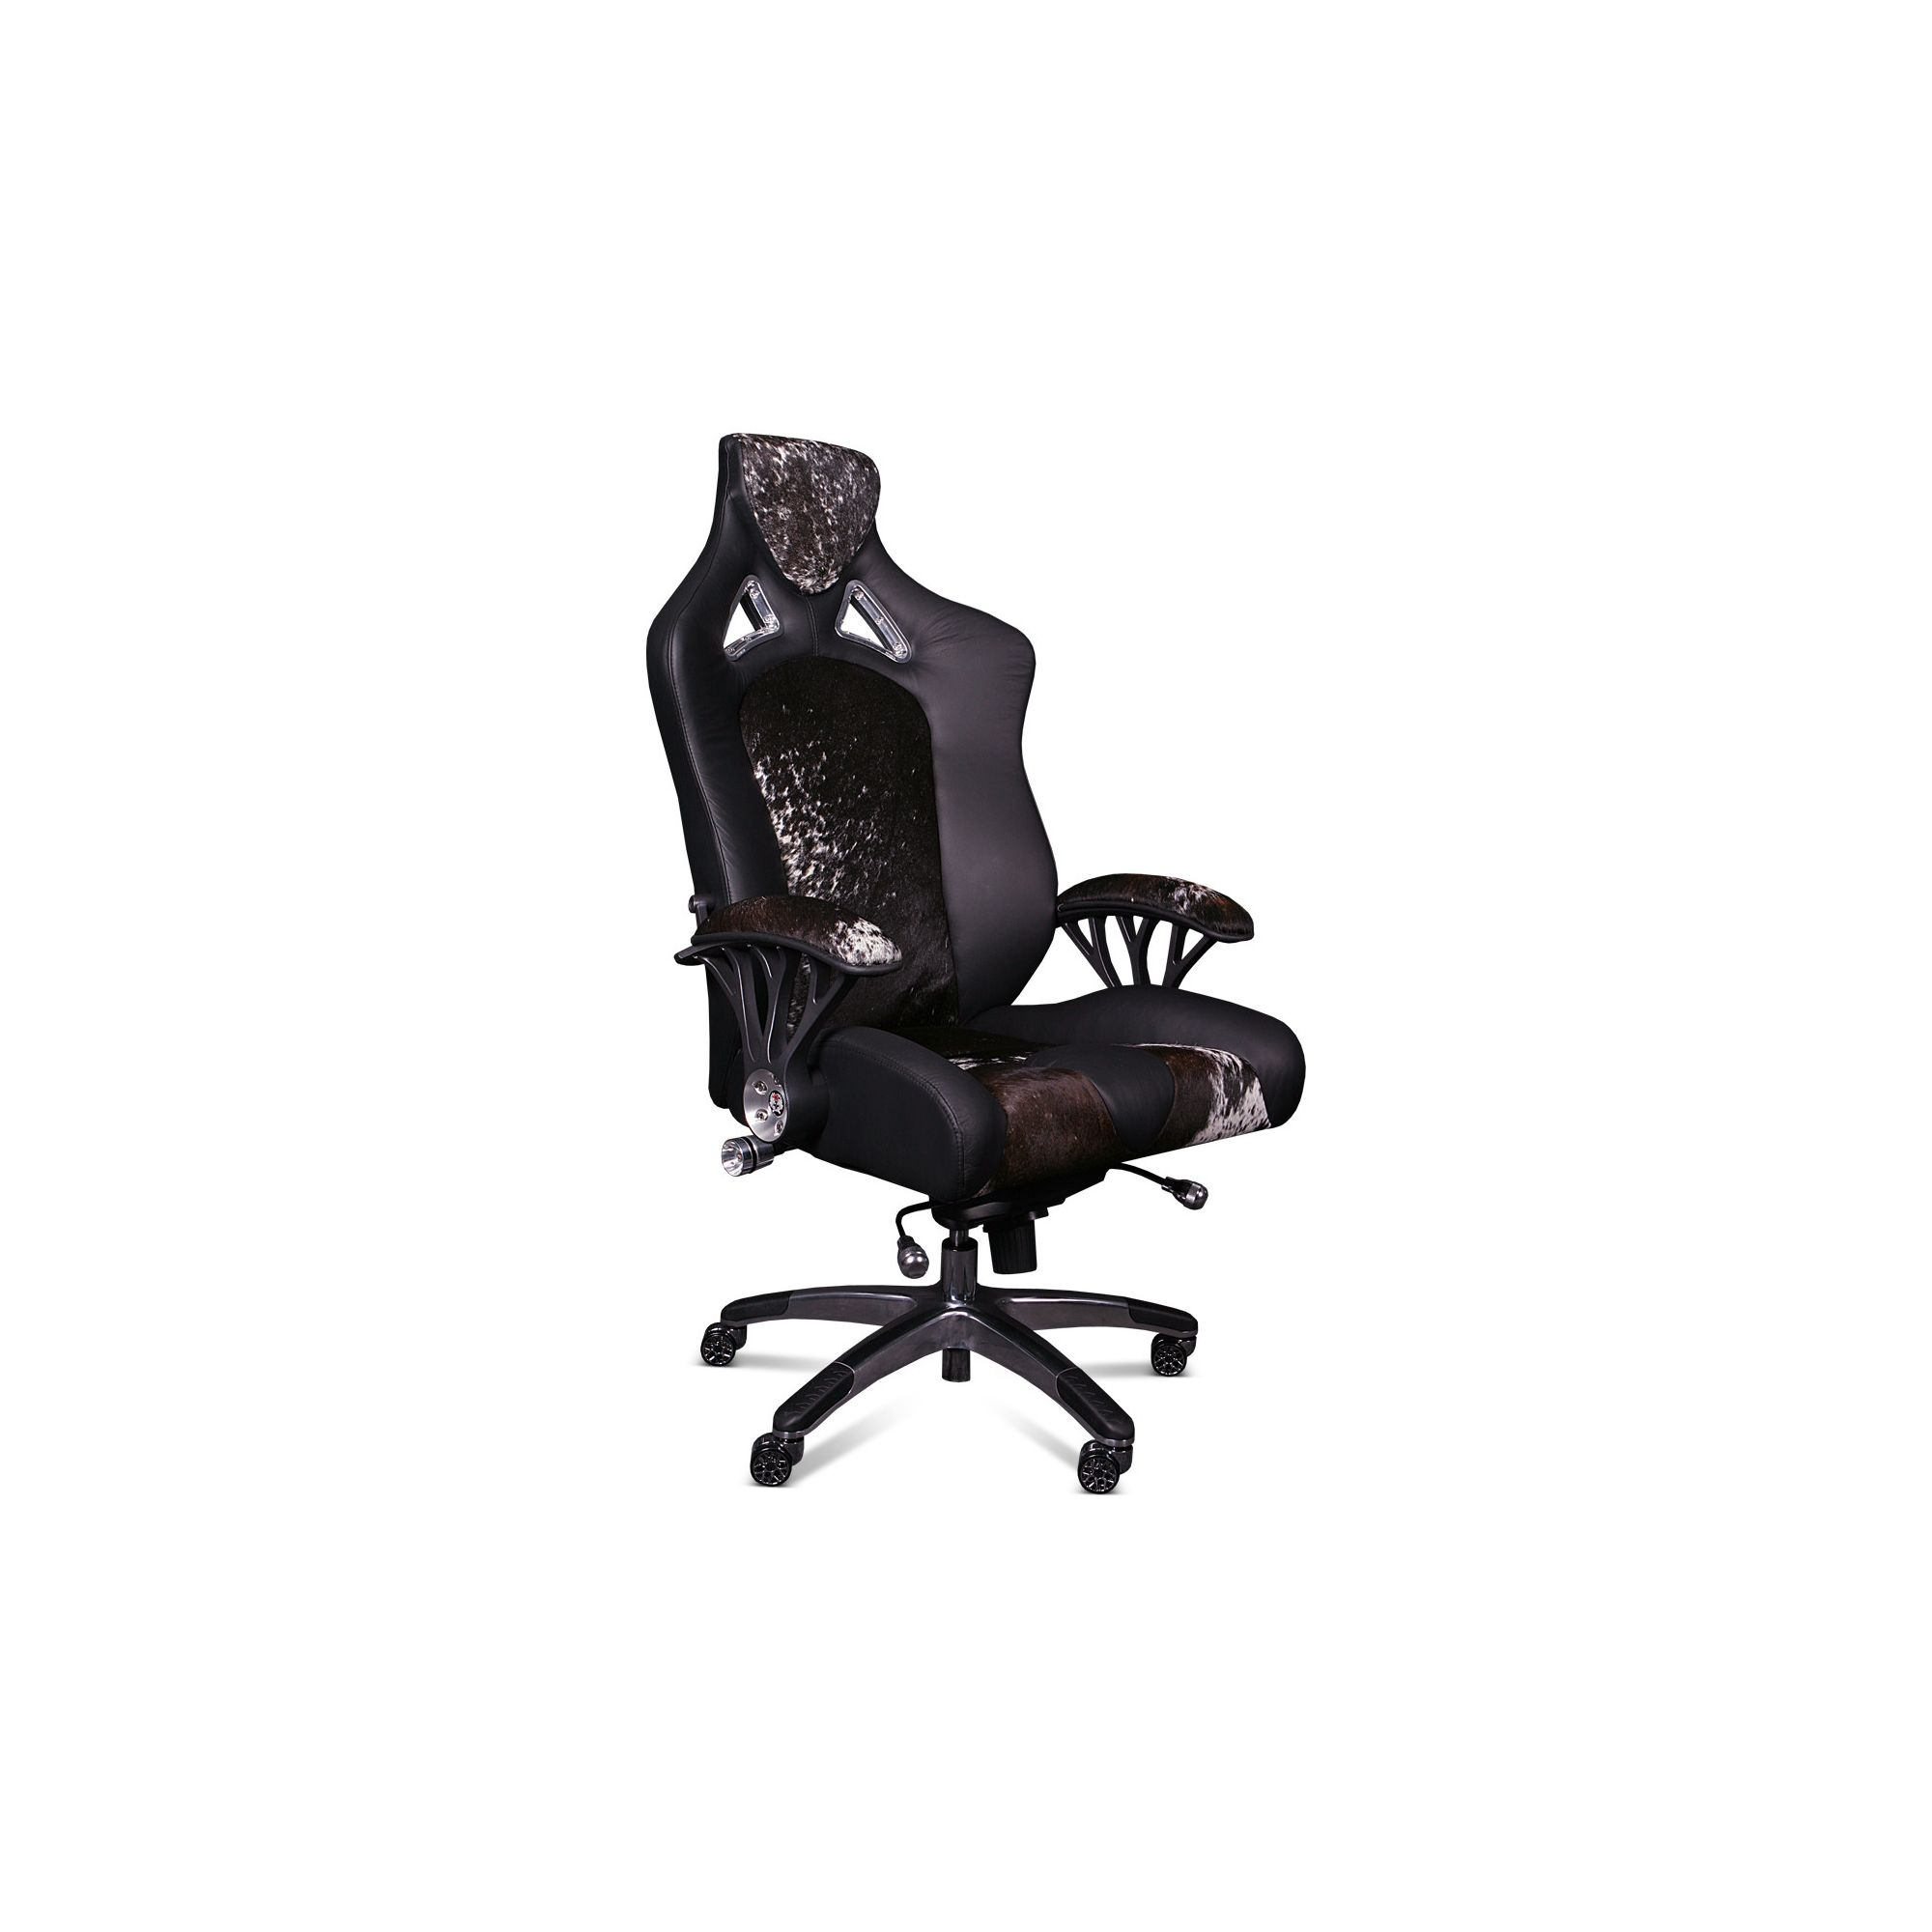 ProMech Racing Speed998 Upholstered  Office Racing Chair - Black Leather/Cowhide at Tesco Direct